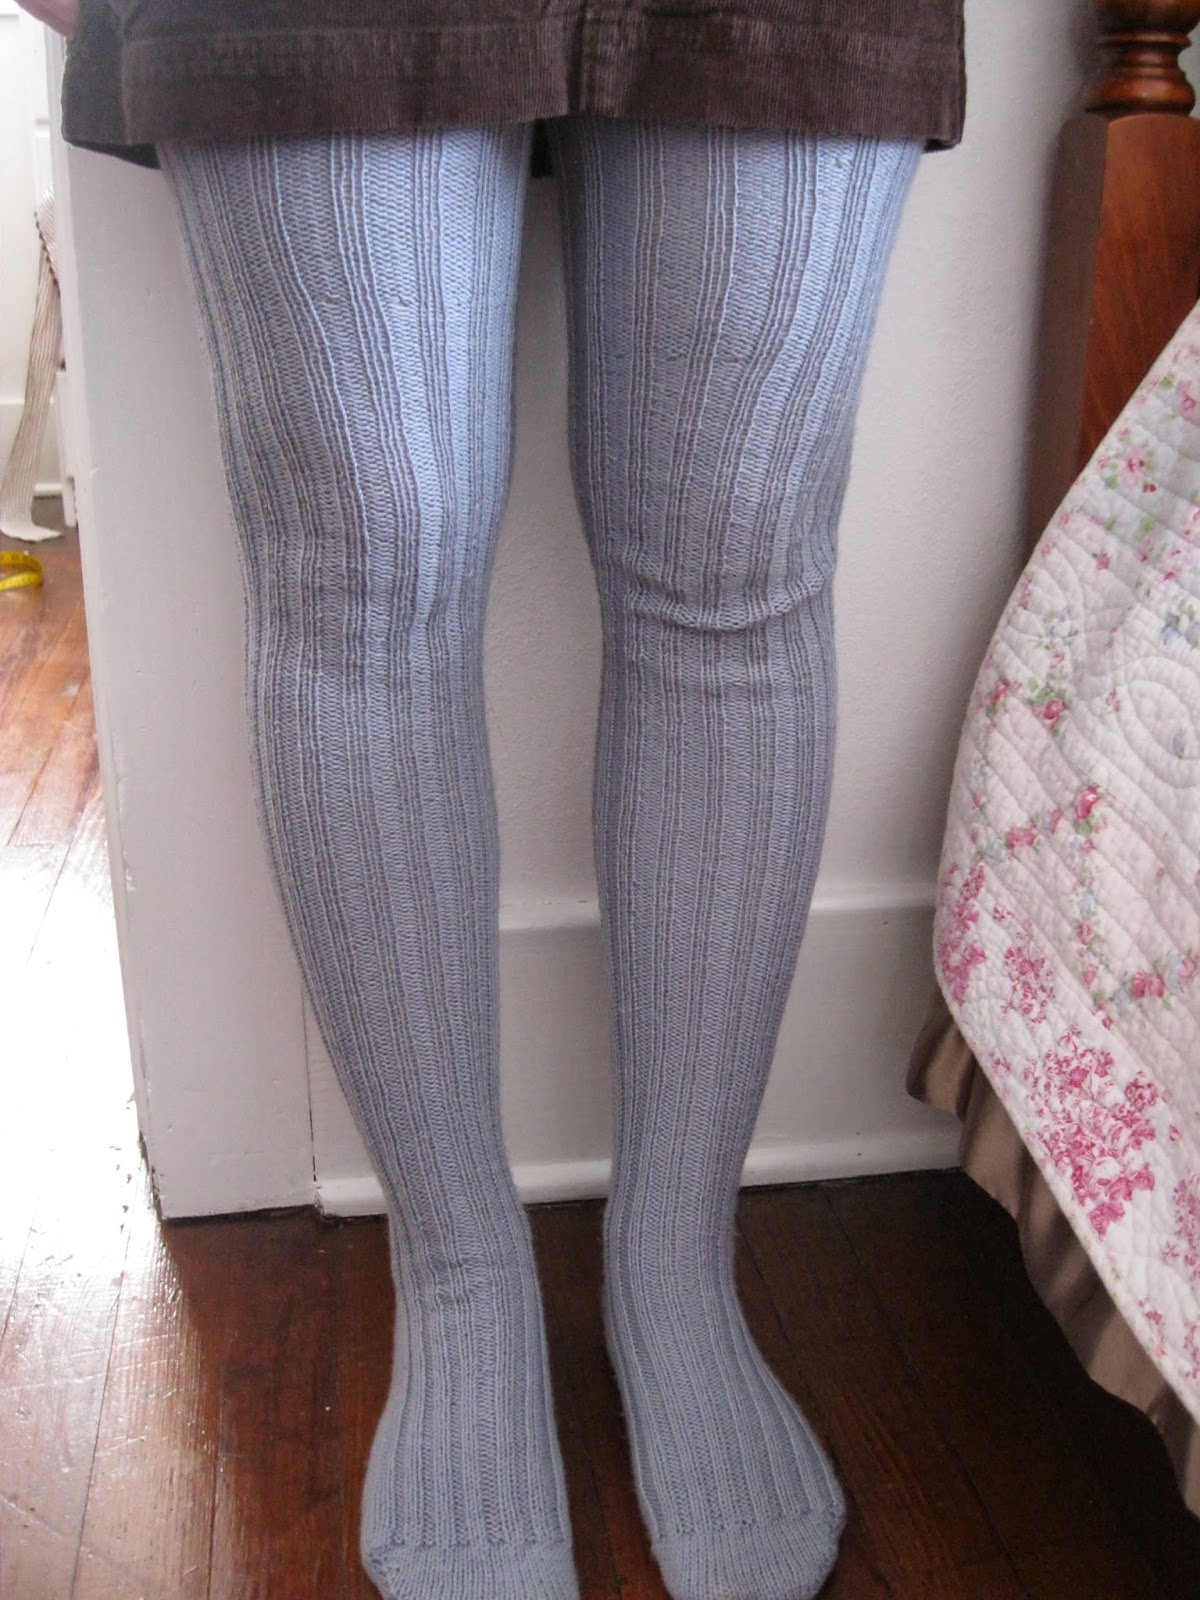 Tights Knitting Pattern : Apron History: Knitted Tights